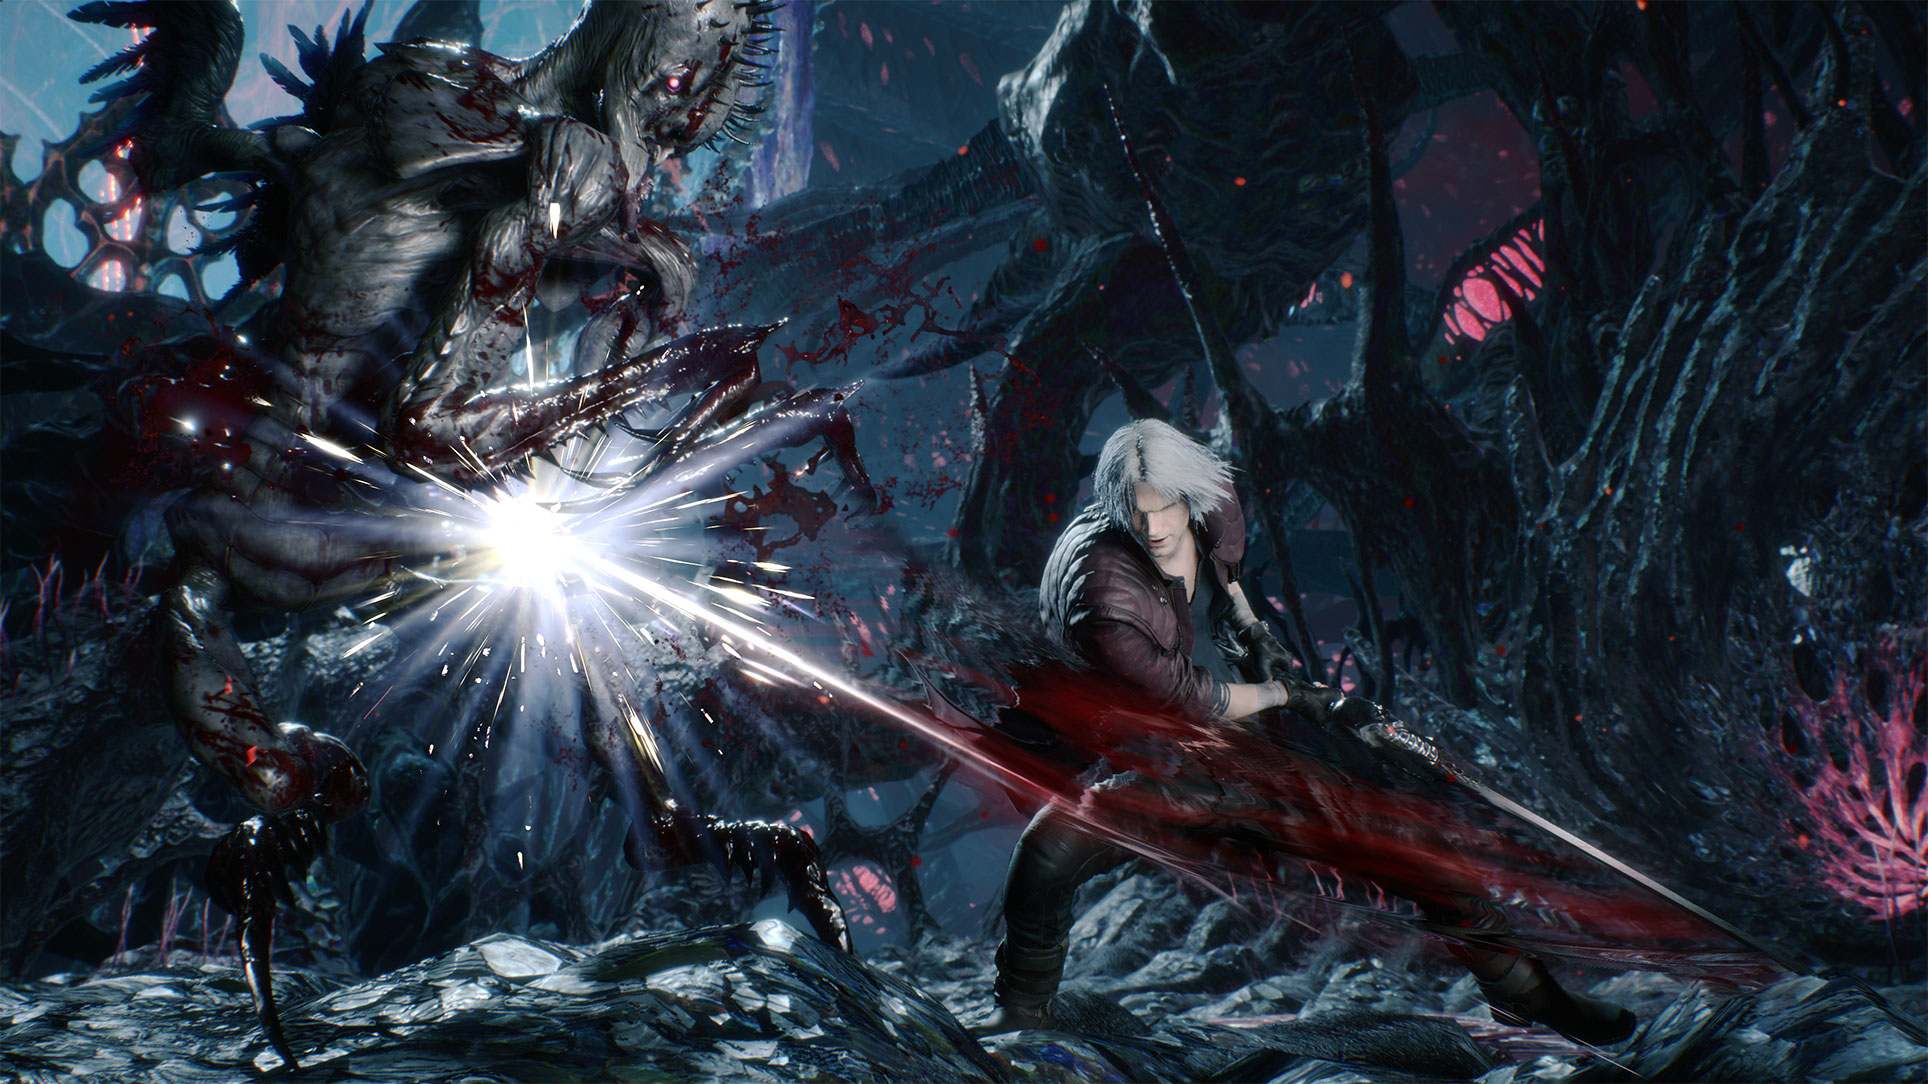 Das beste Action-Spiel 2019: Devil may cry 5